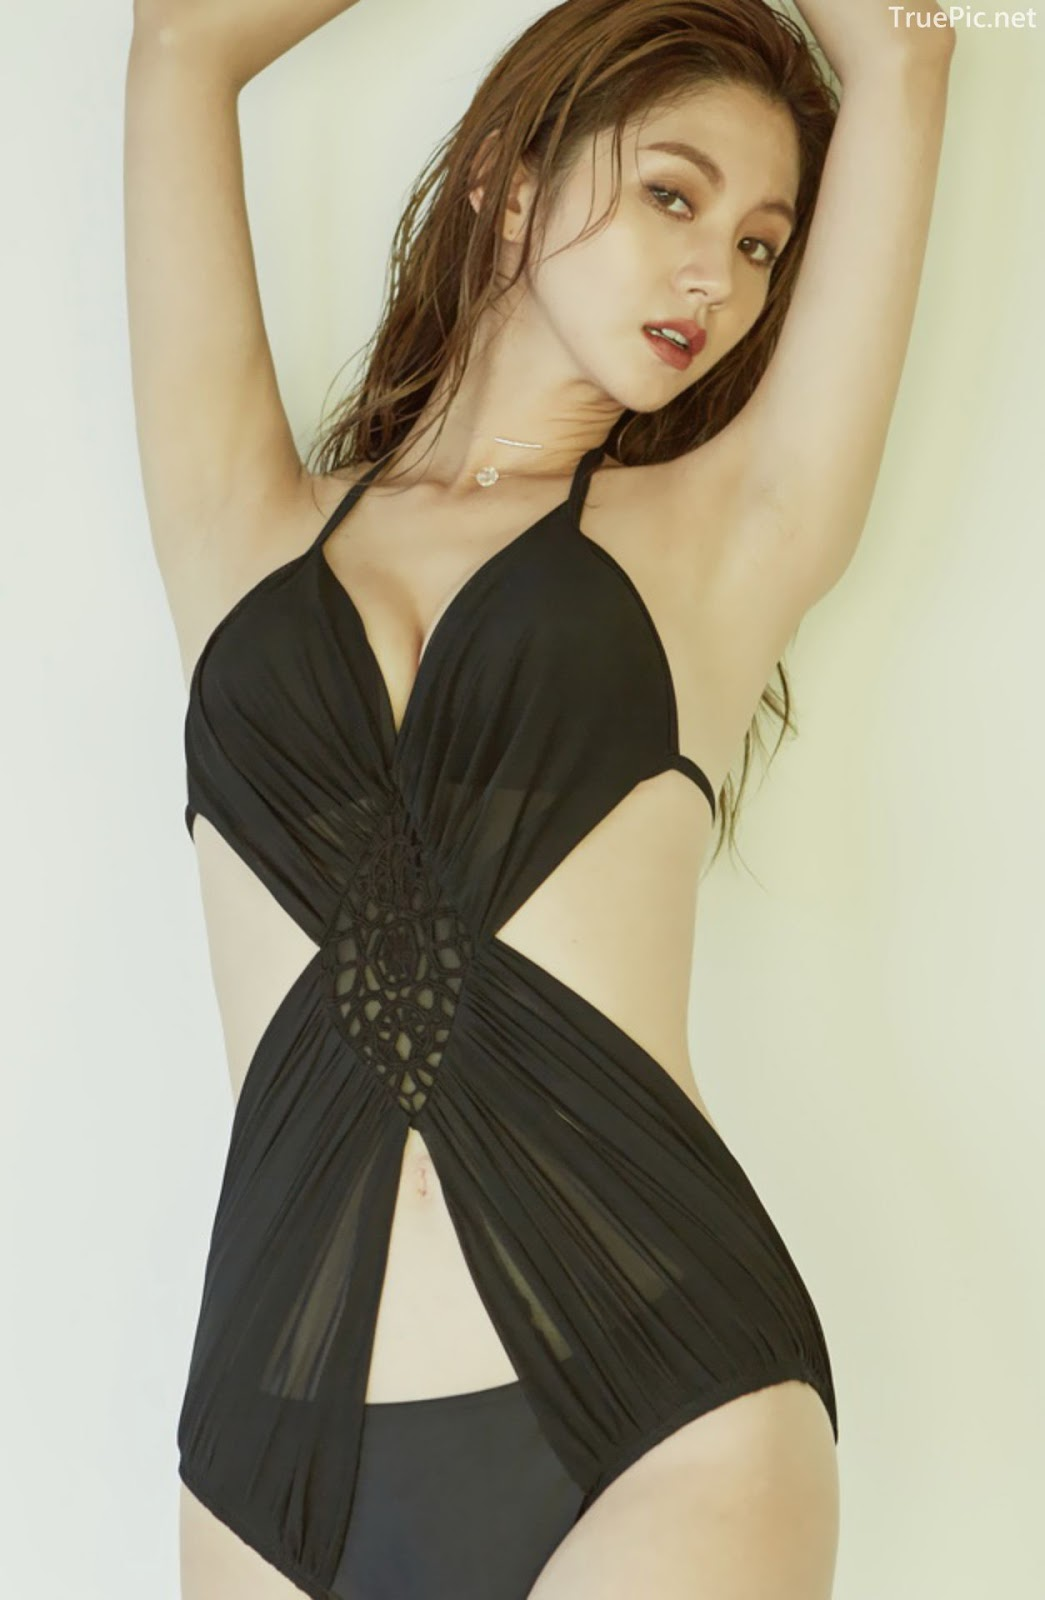 Korean model and fashion - Lee Chae Eun - Monokini for summer vacation - Picture 5